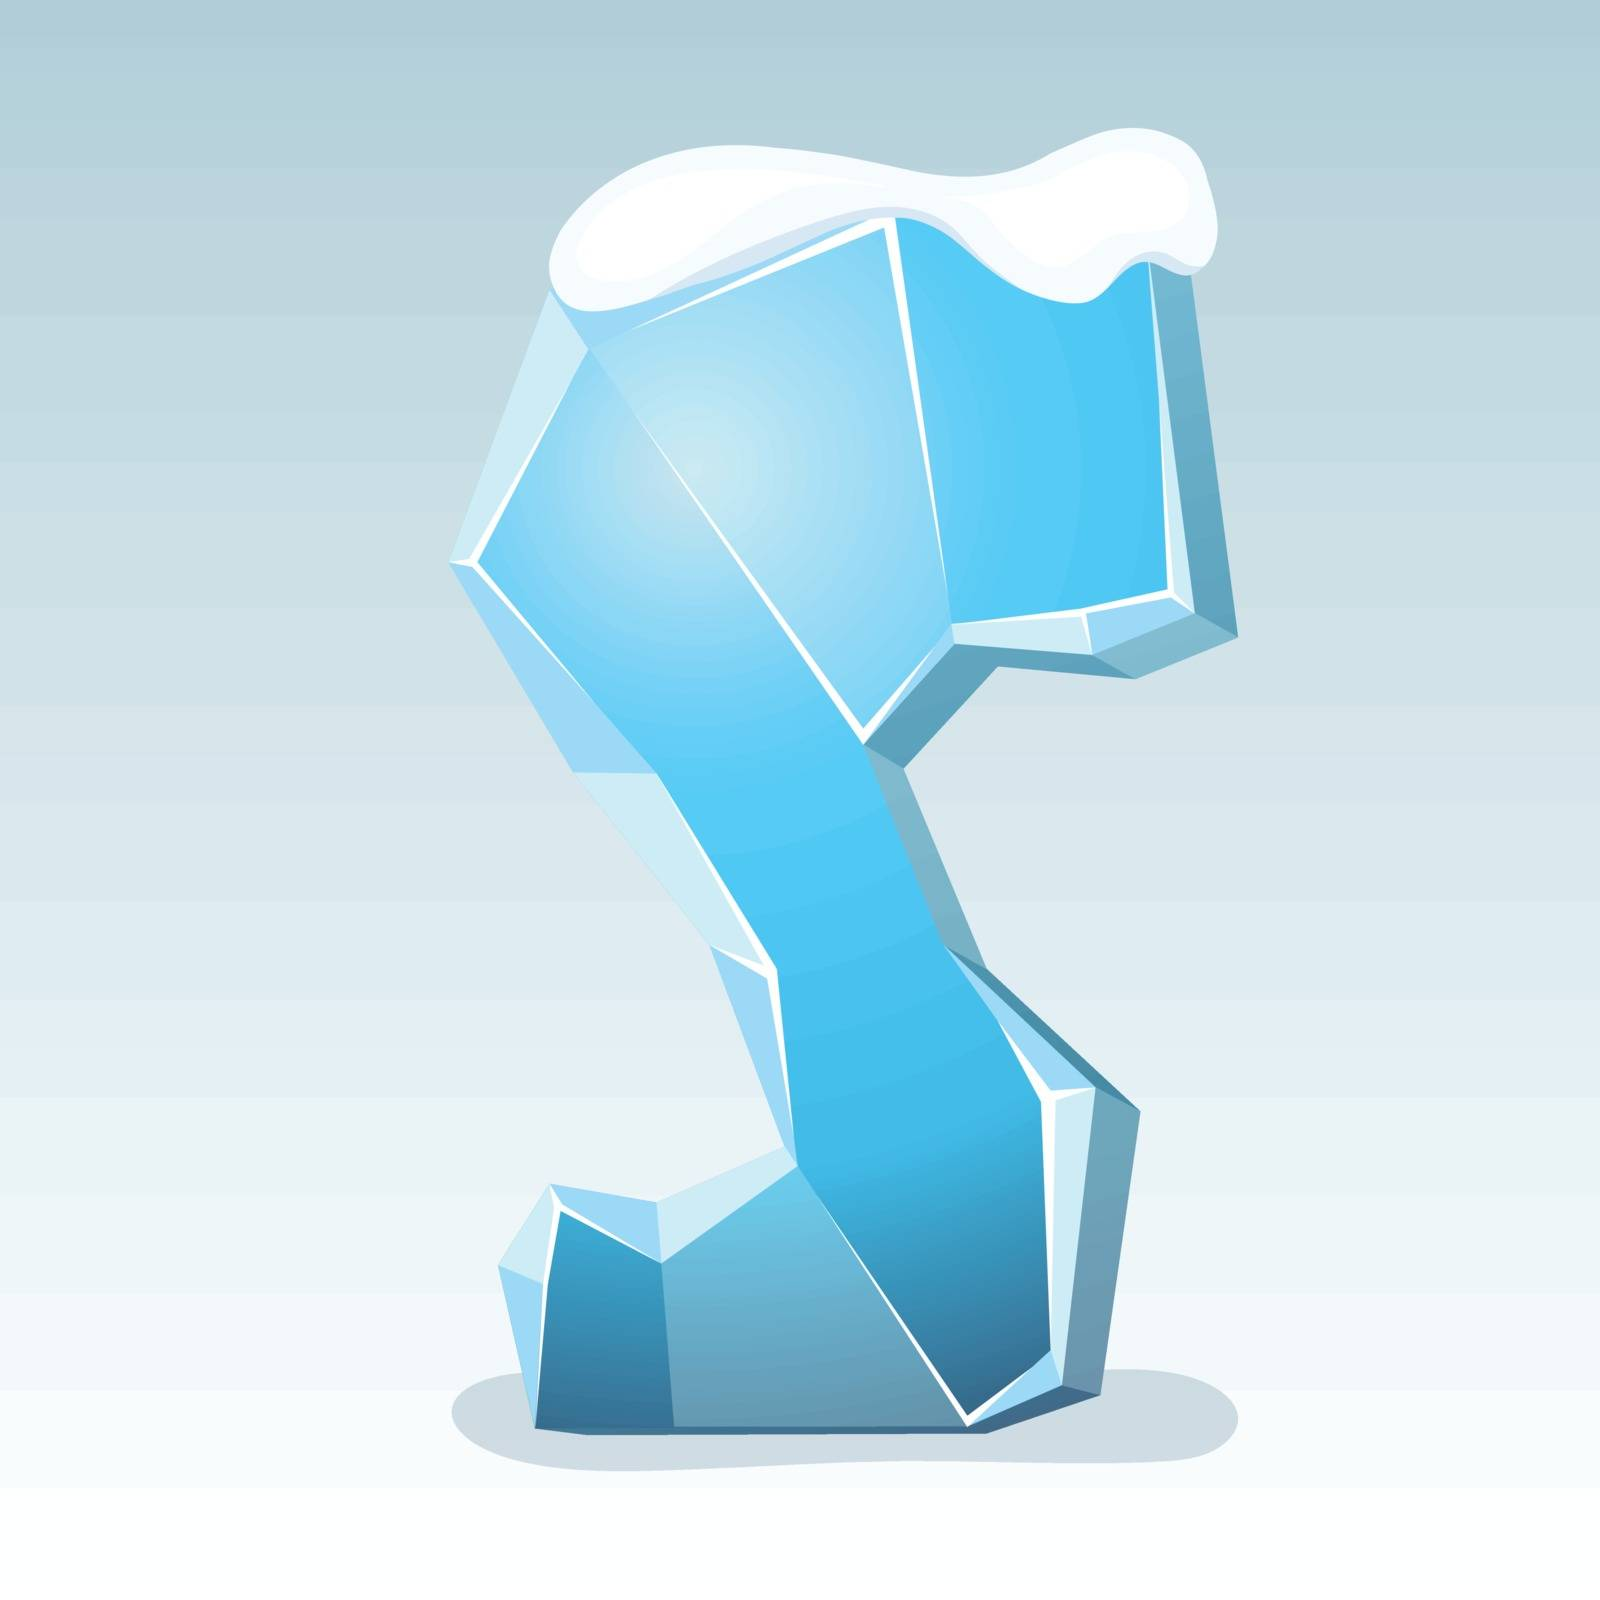 Ice letter S with snow on the top, vector font